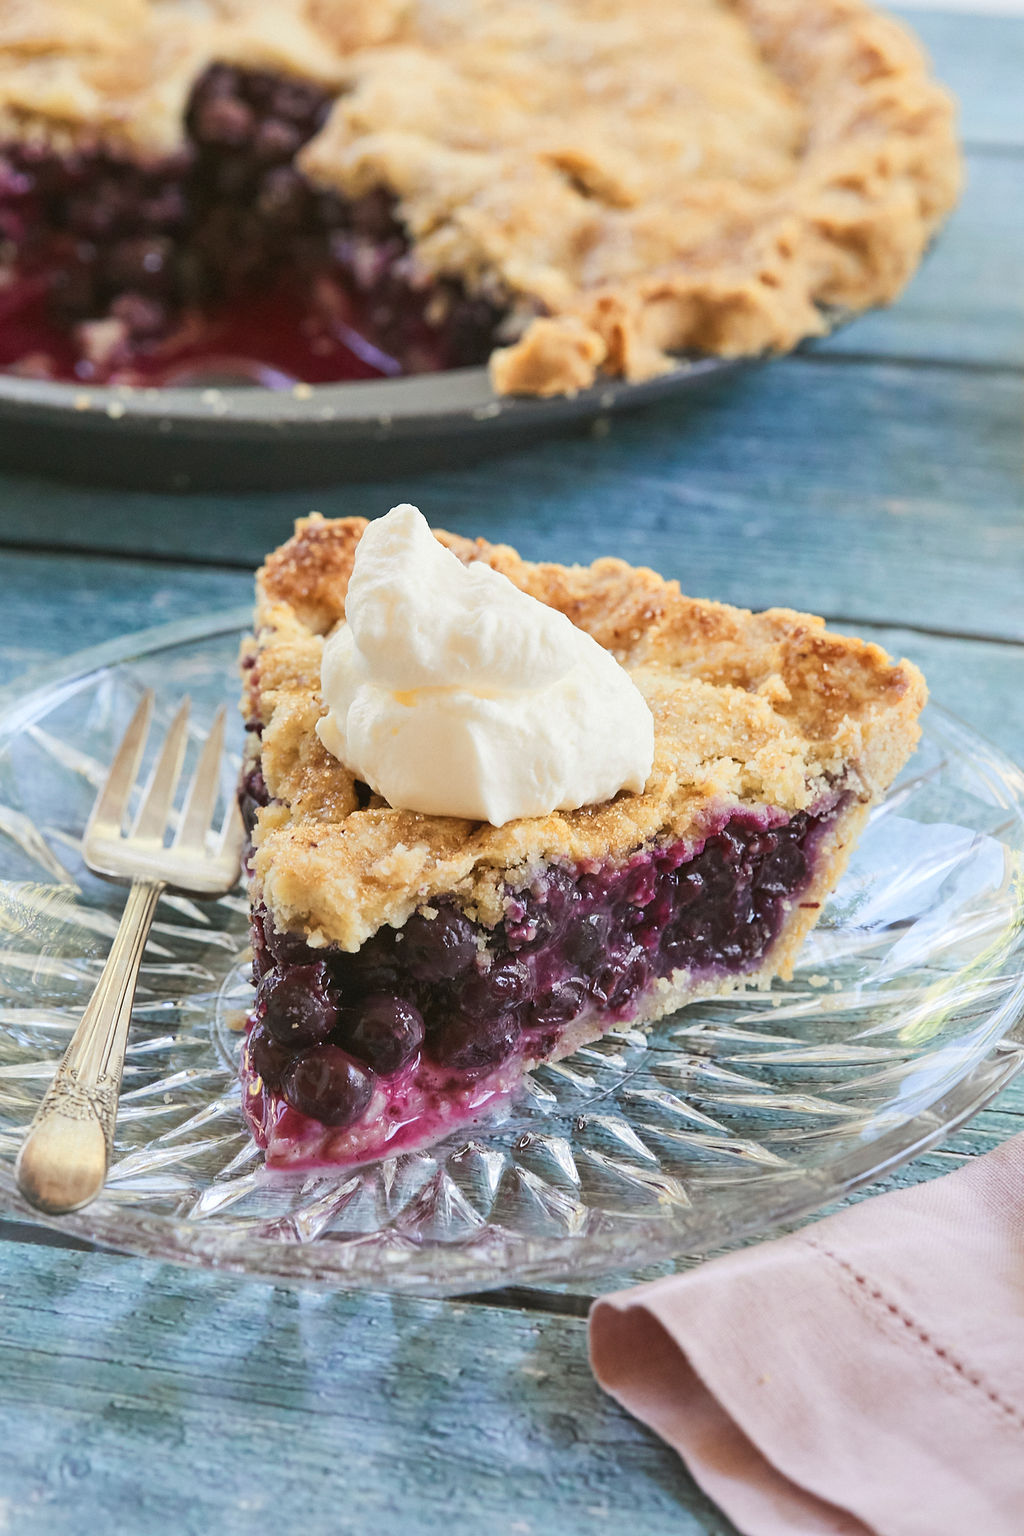 A slice of the best blueberry pie, topped with whipped cream, showing color, texture, and consistency.